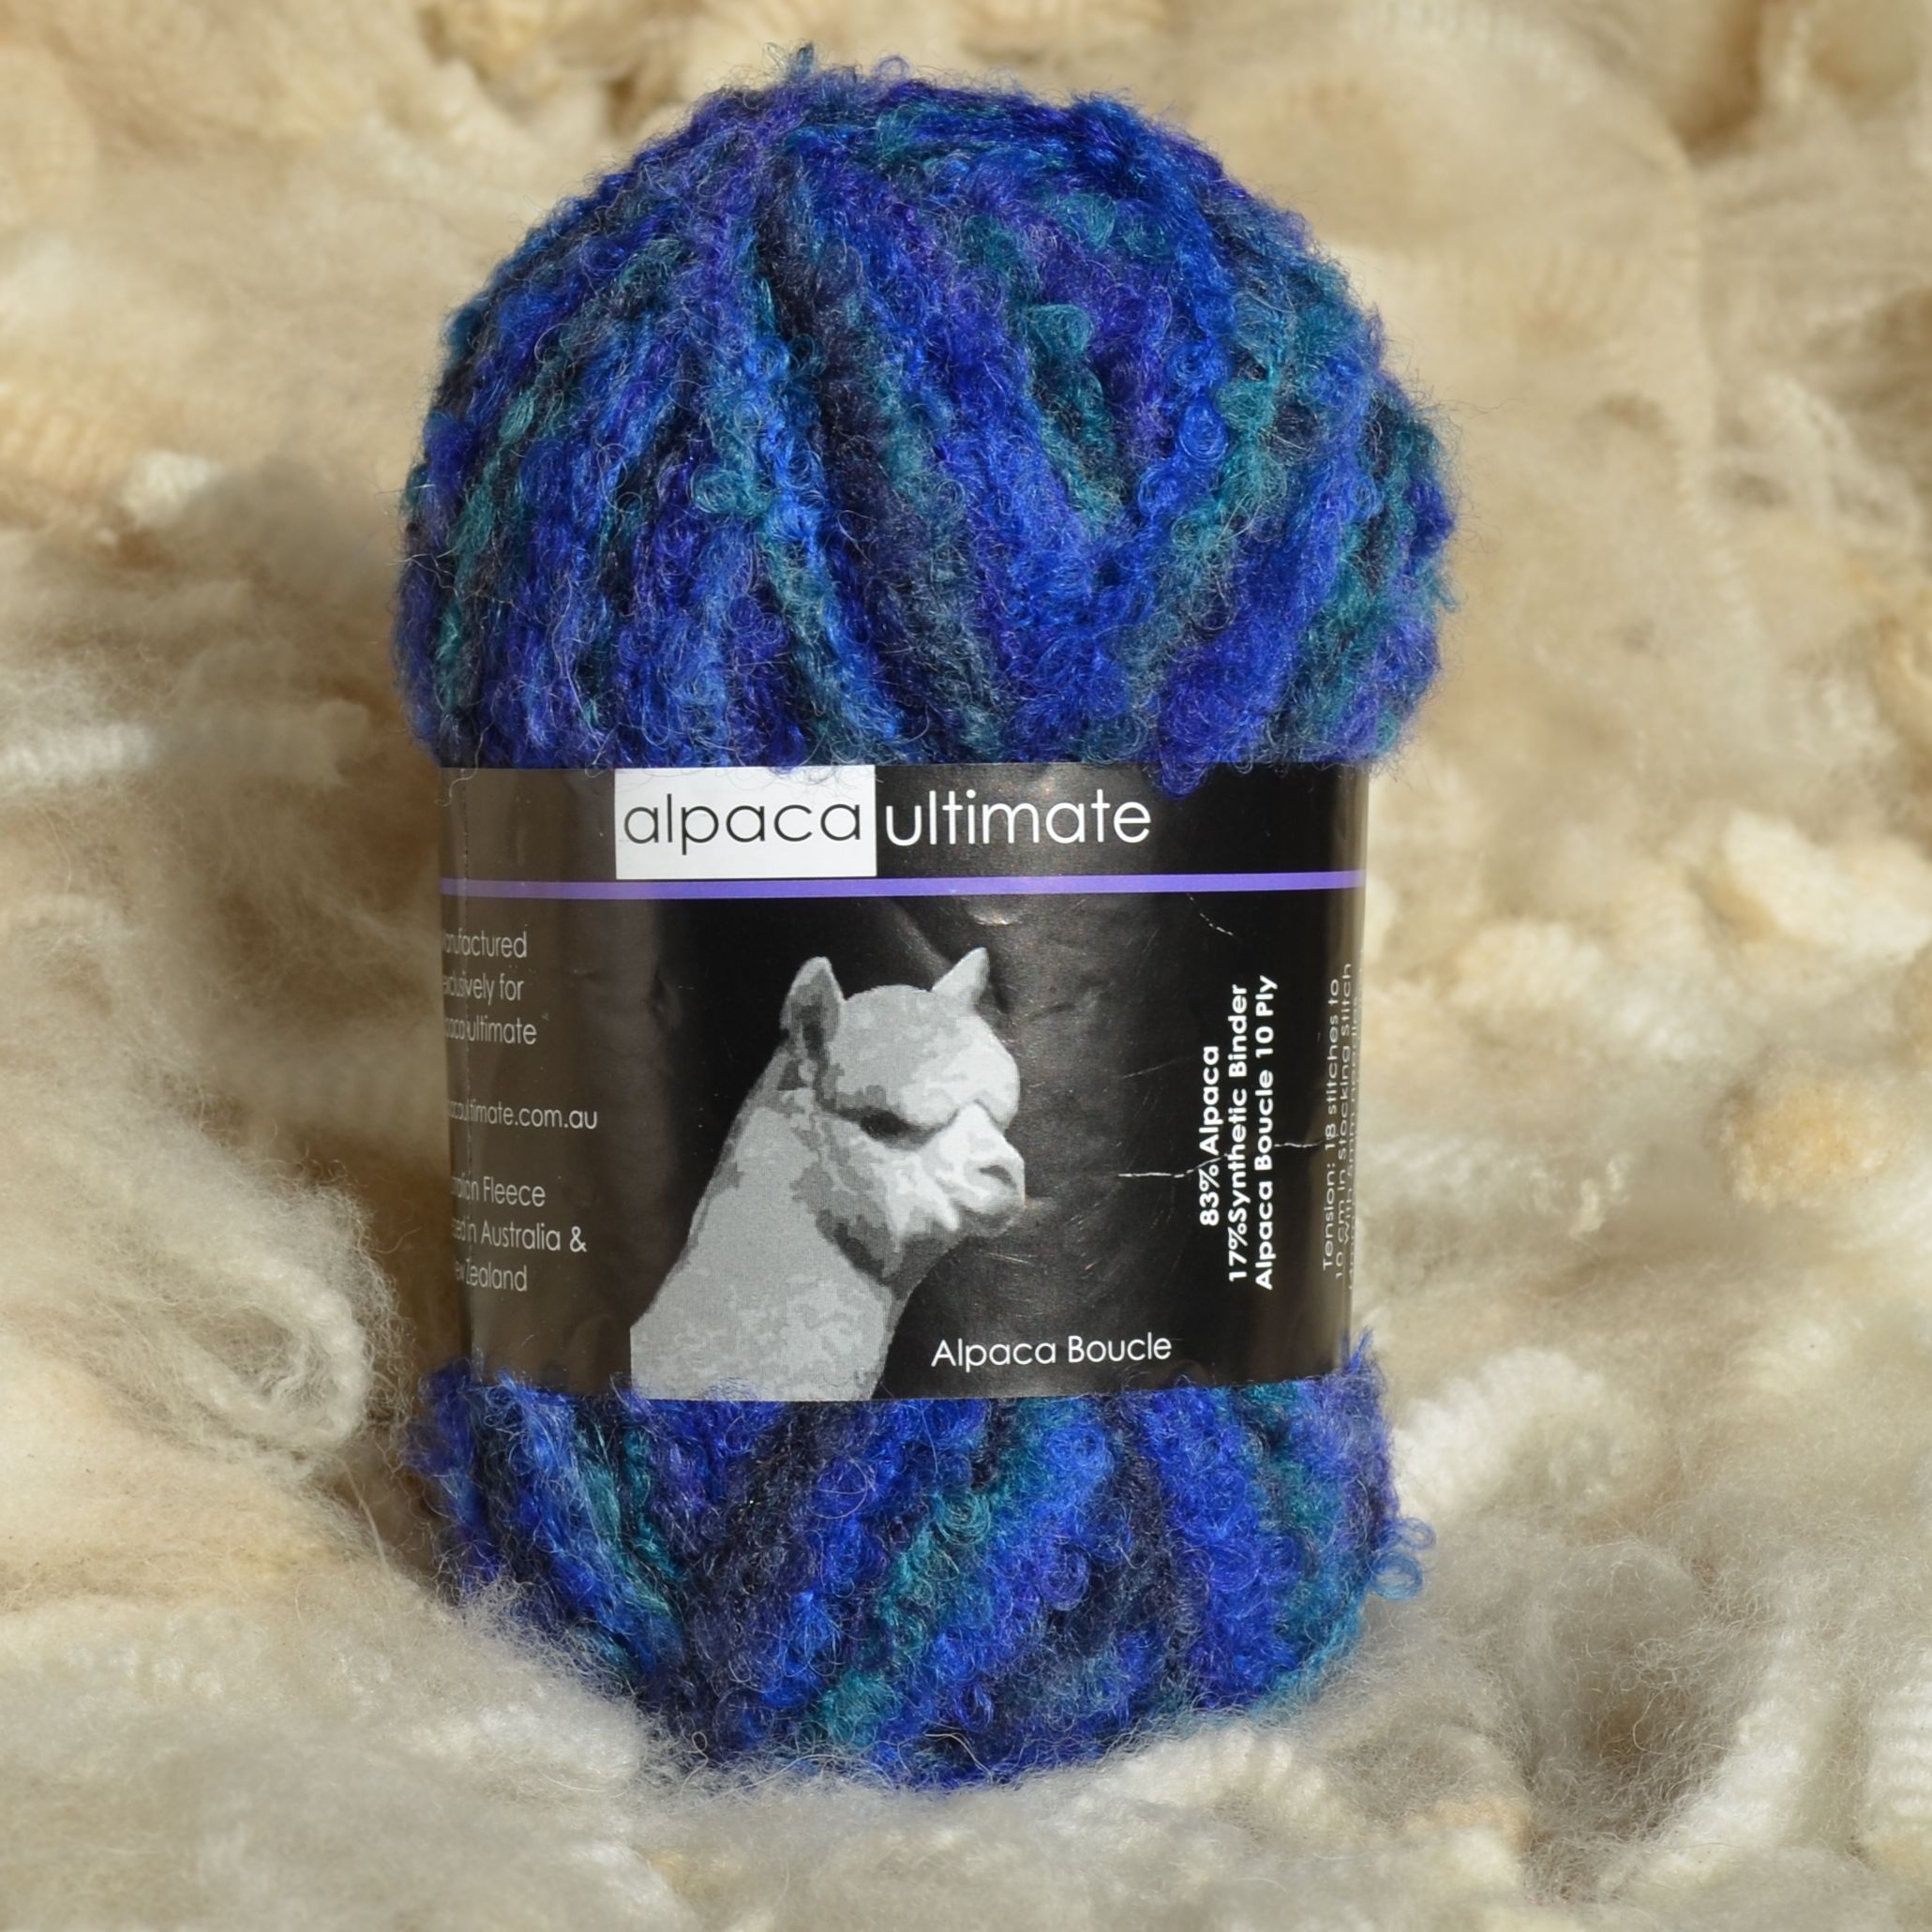 Alpaca Ultimate 10 Ply Boucle Yarn Blue Mist 83/% Alpaca 17/% Synthetic Binder